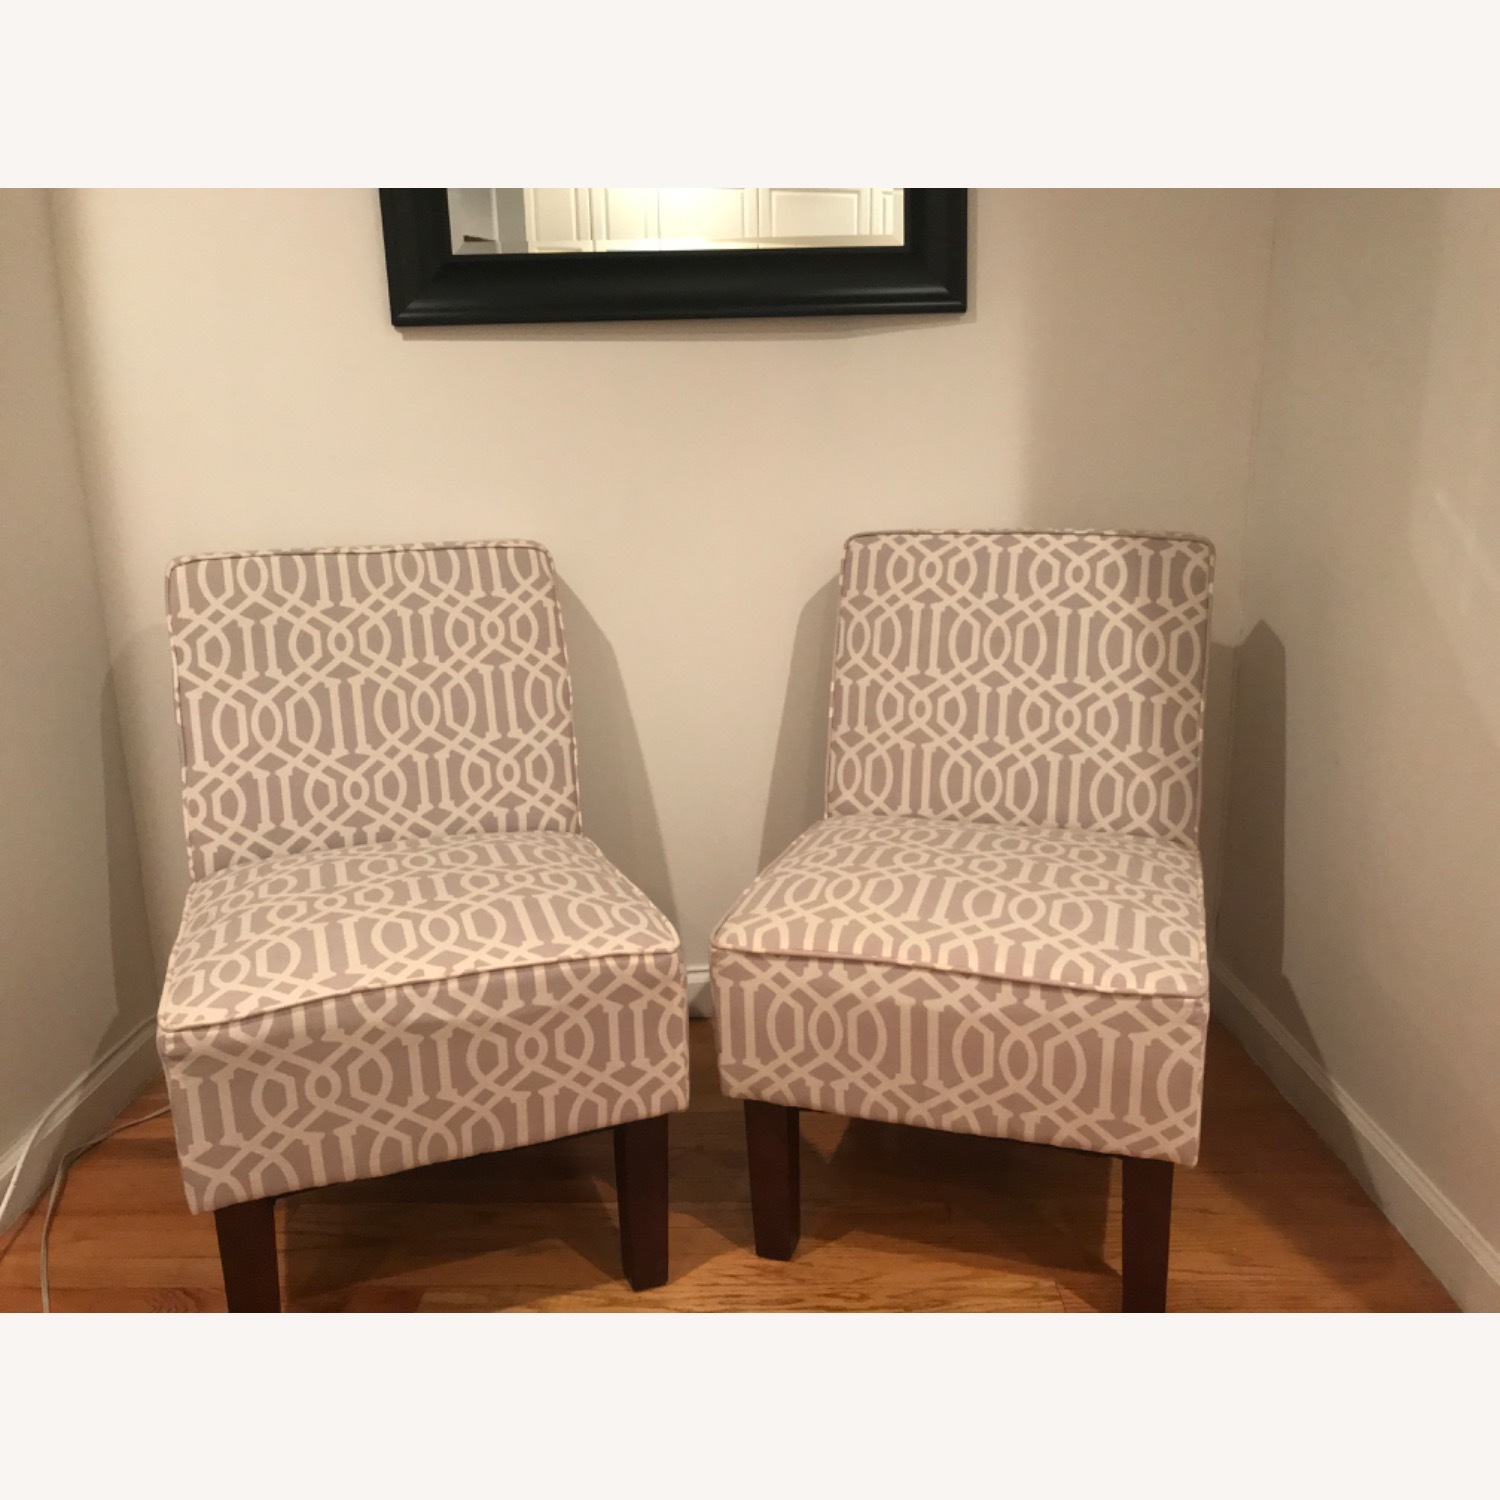 Lovely Conversational Accent Chairs - image-1